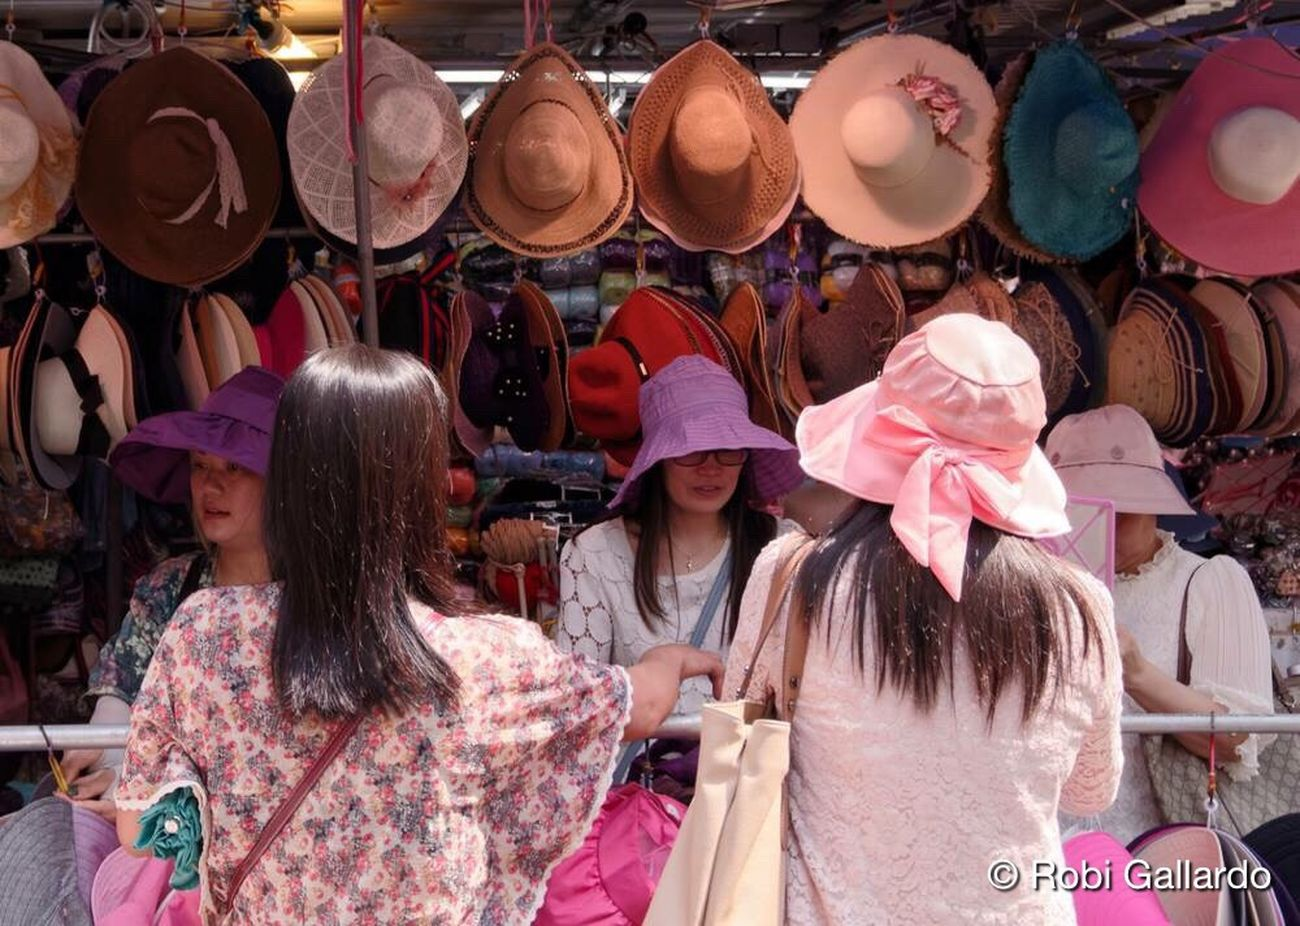 Hat stop People Women Streetphotography Real People Street Photography Hong Kong HongKong Eyeem Philippines DSLR DSLR Photography Pentax Dslrphotography Street Fashion